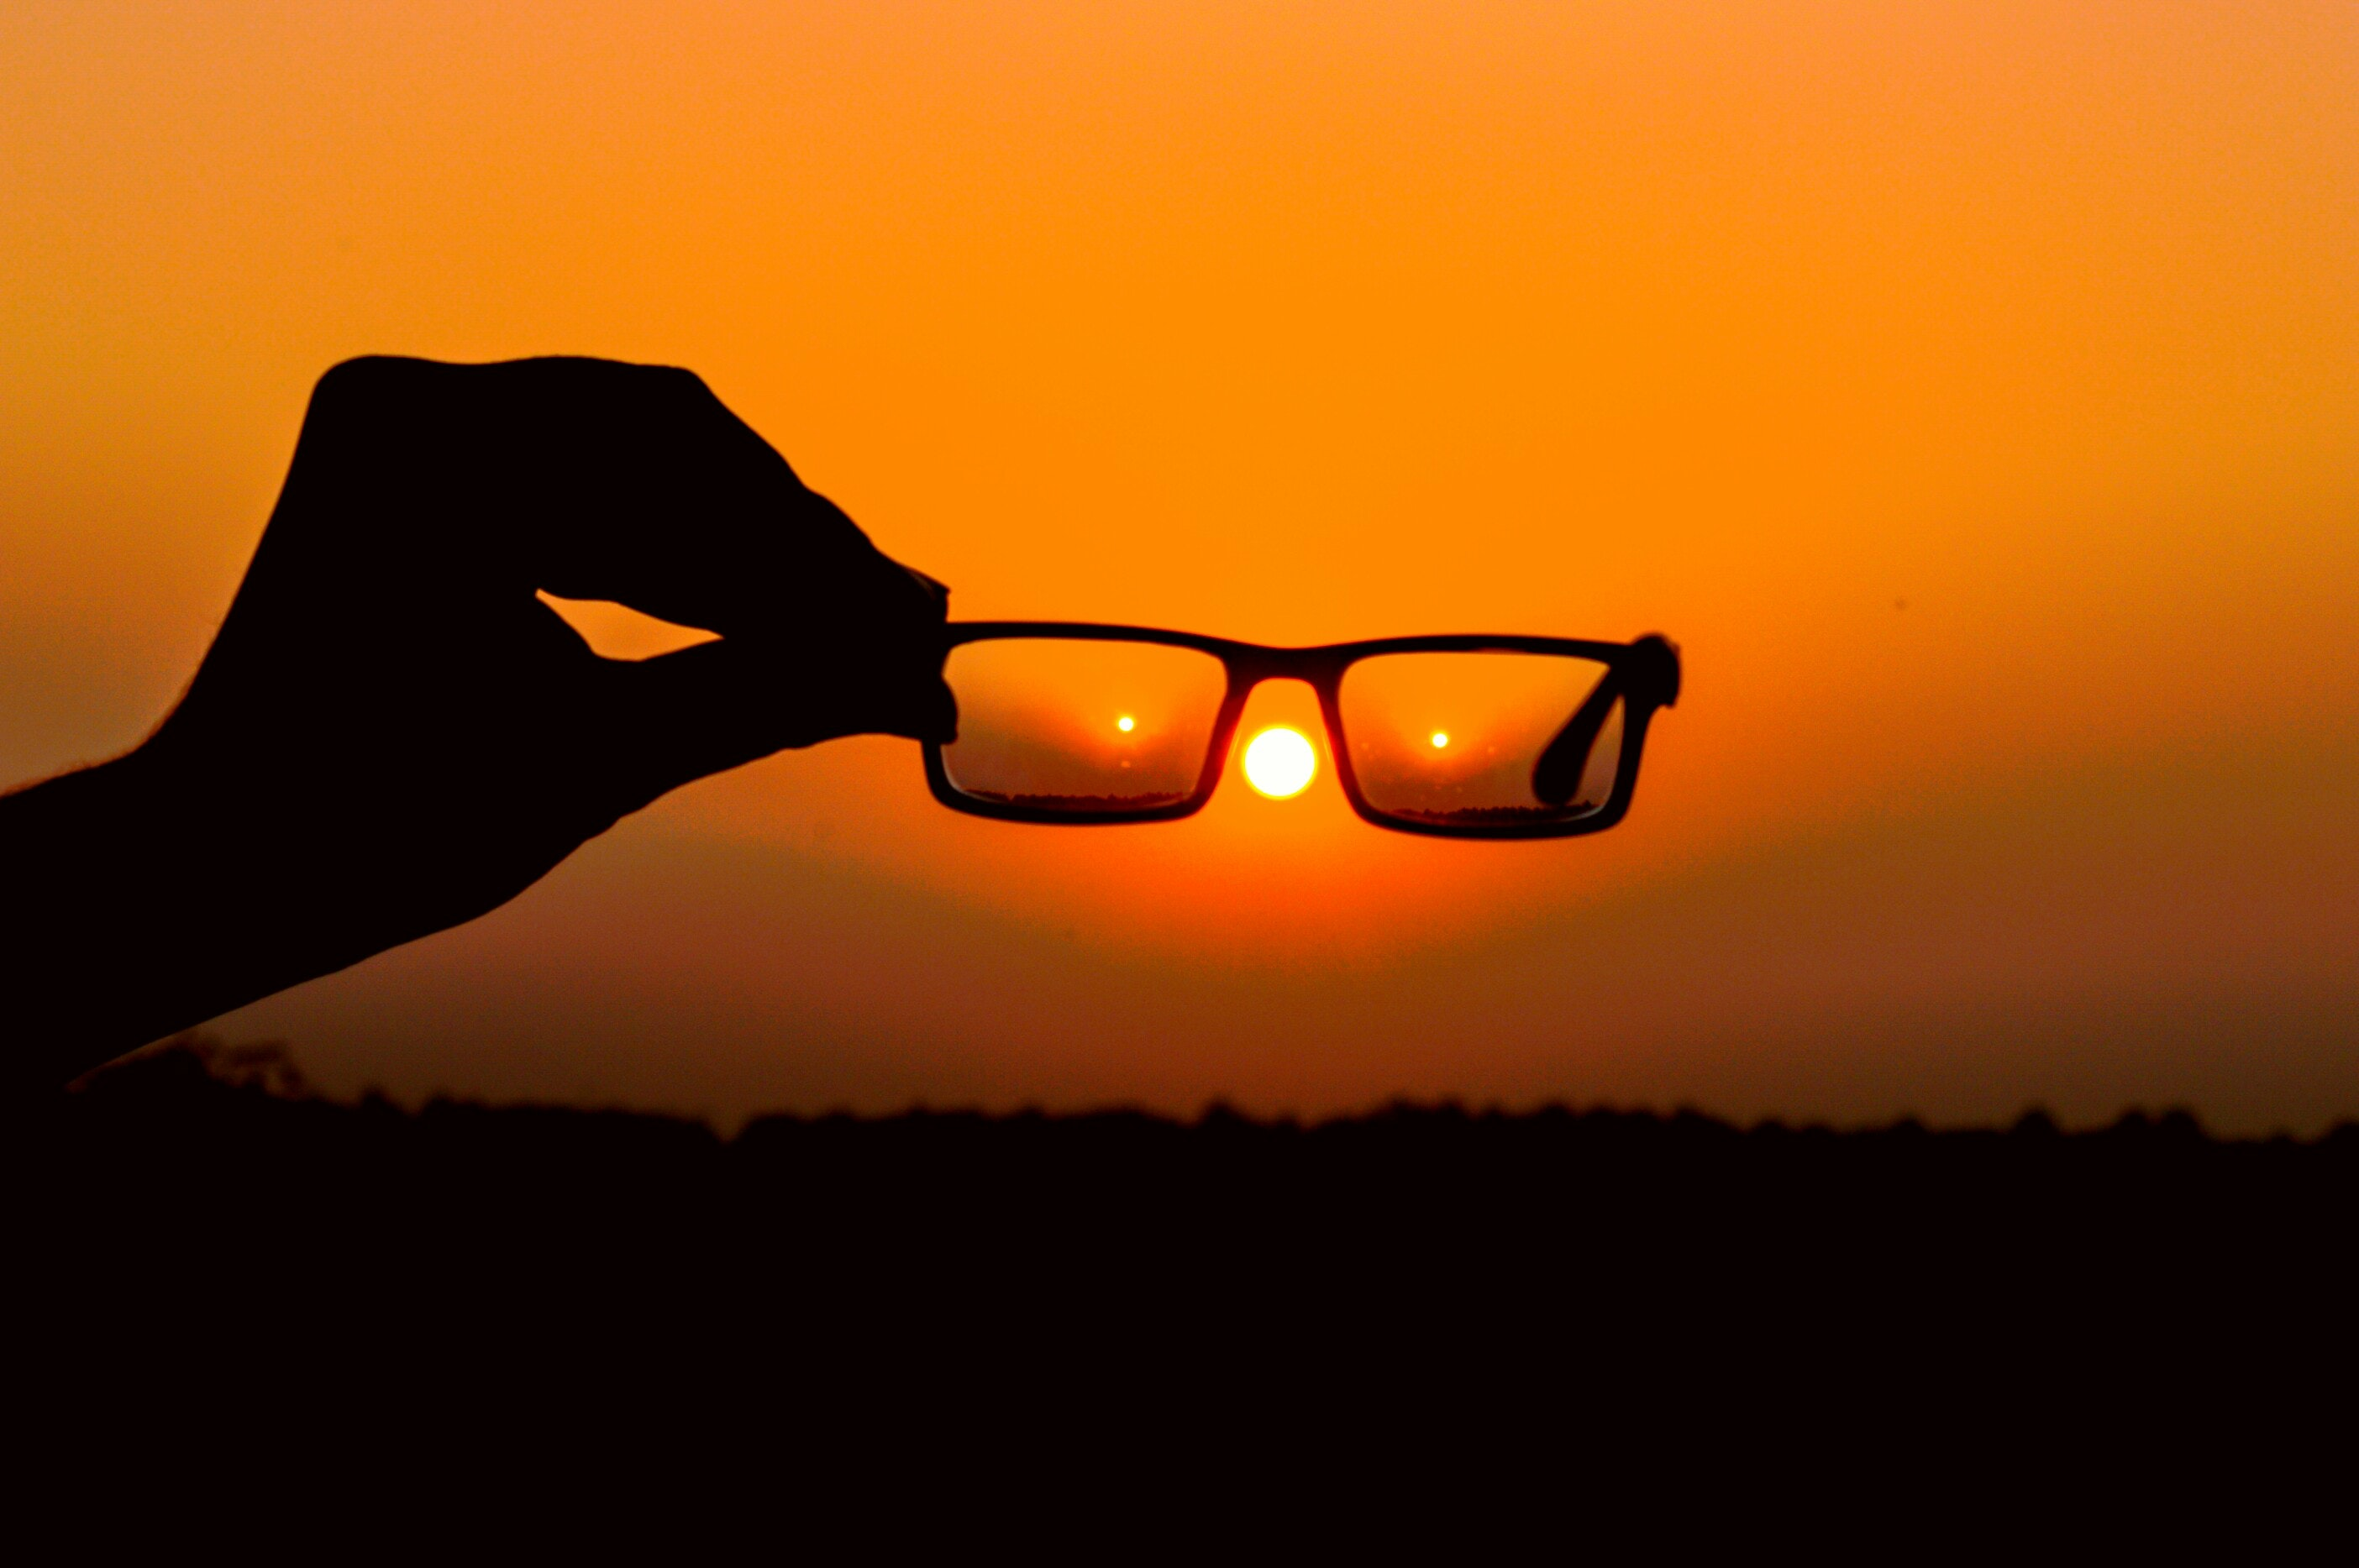 Silhouette of person's hand holding eyeglasses during golden hour photo